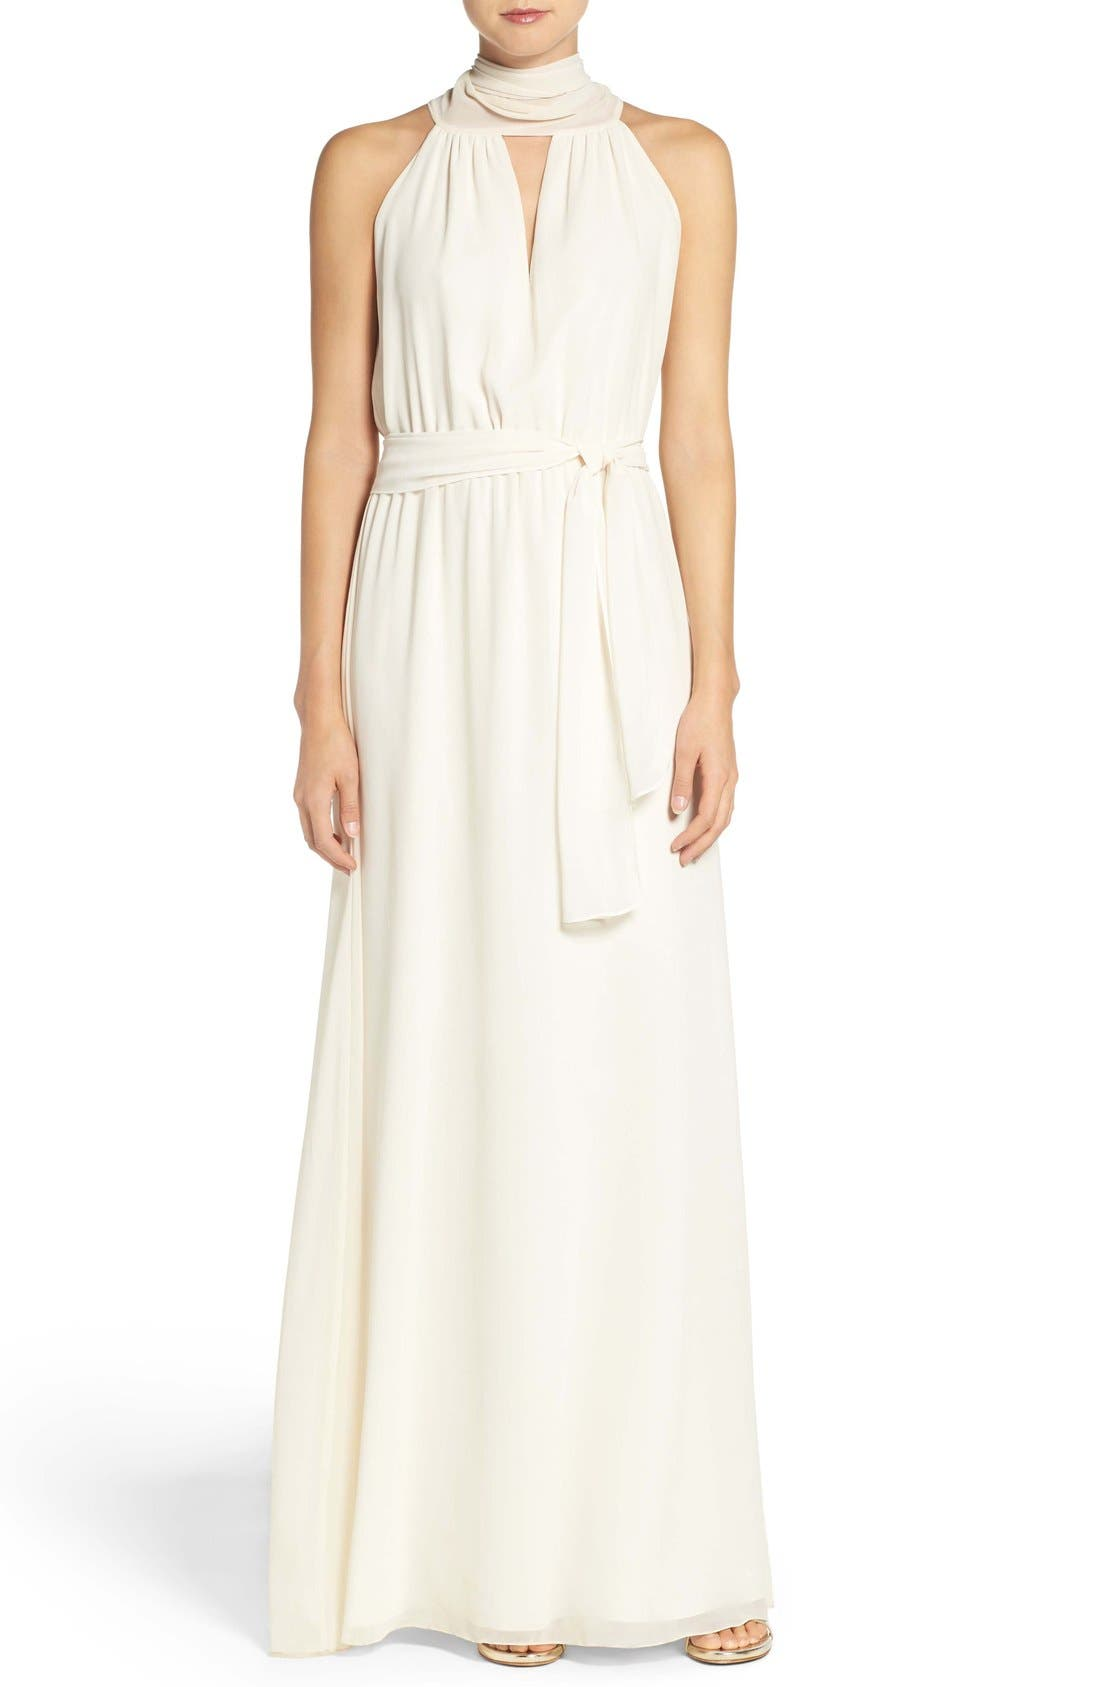 Alternate Image 1 Selected - Ceremony by Joanna August 'Riggs' Halter V-Neck Chiffon Gown